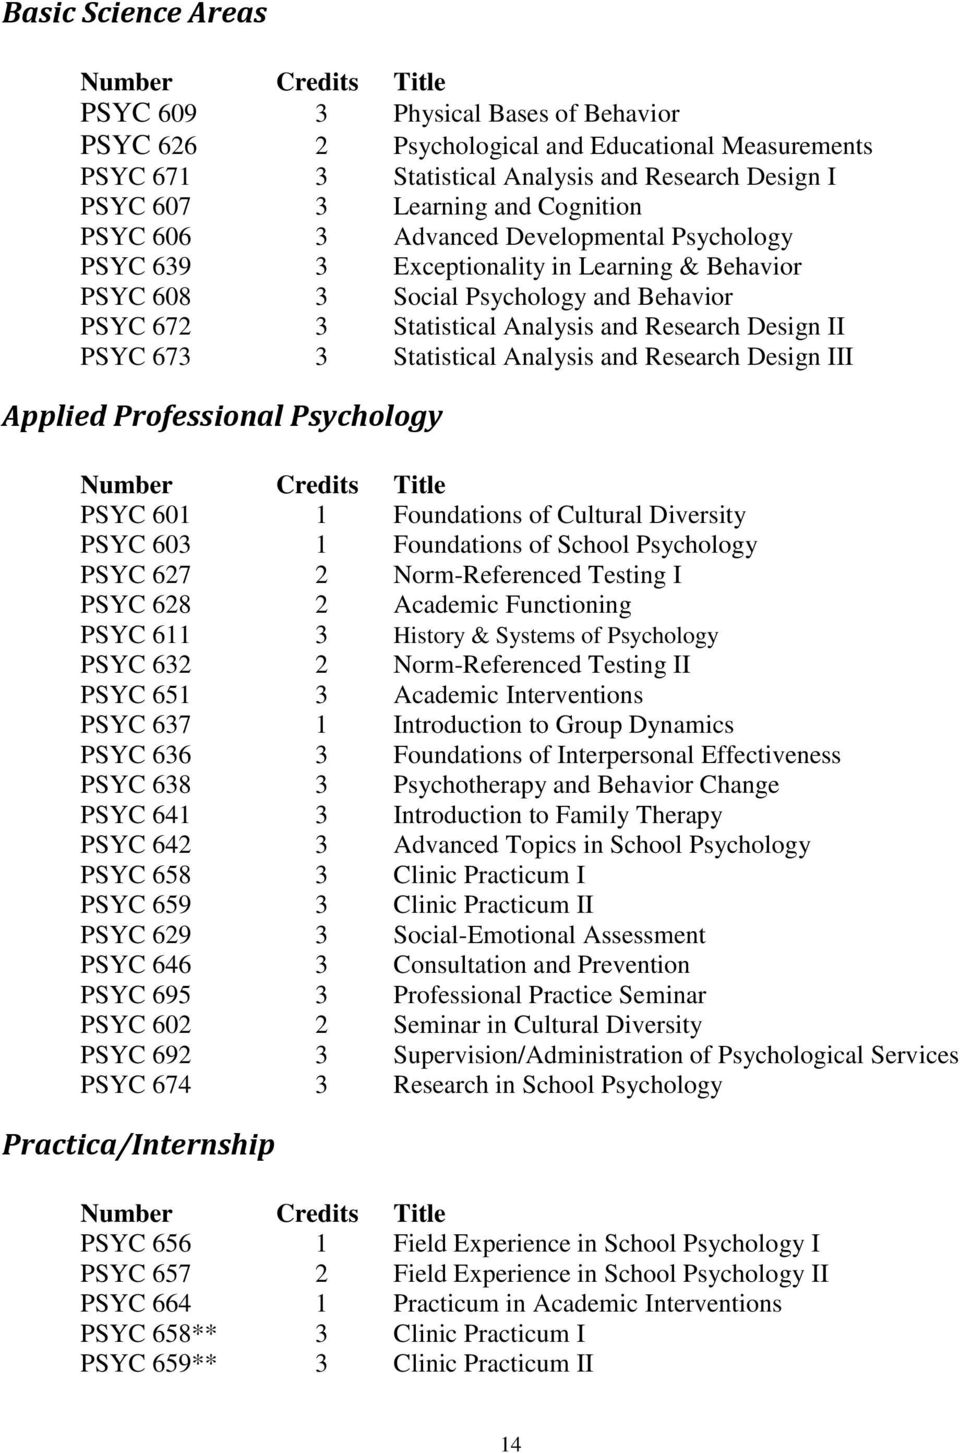 Research Design II PSYC 673 3 Statistical Analysis and Research Design III Applied Professional Psychology Number Credits Title PSYC 601 1 Foundations of Cultural Diversity PSYC 603 1 Foundations of